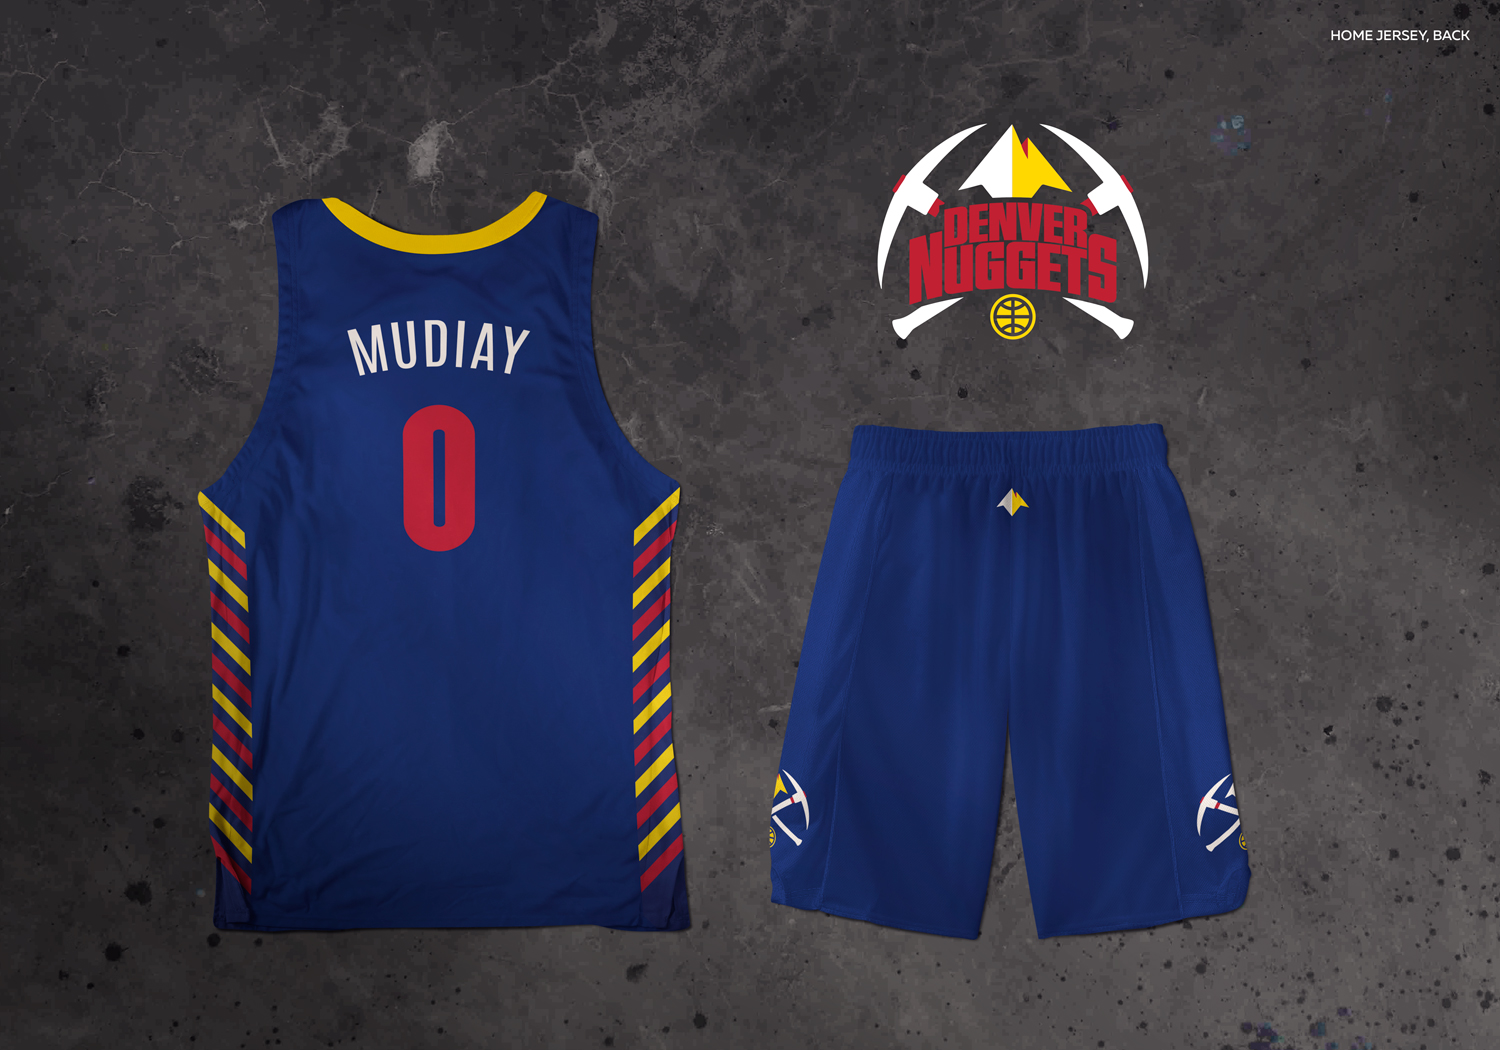 6fe00d8b5ba ... The Royal blue on the main jersey really pops! The color scheme and  design dont .